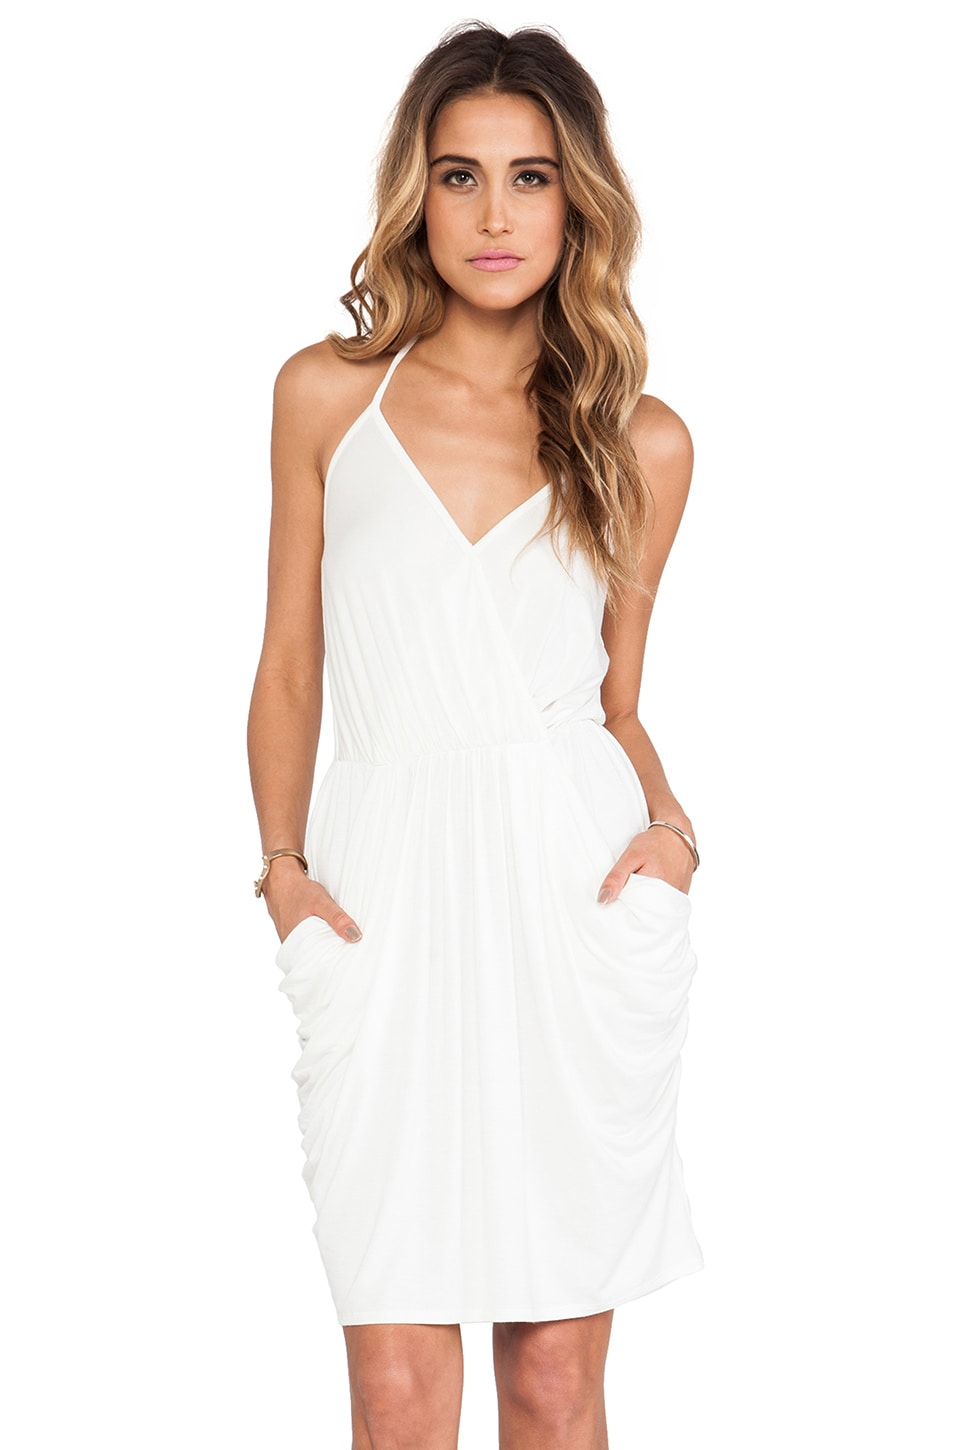 Rachel Pally Lynton Dress in White